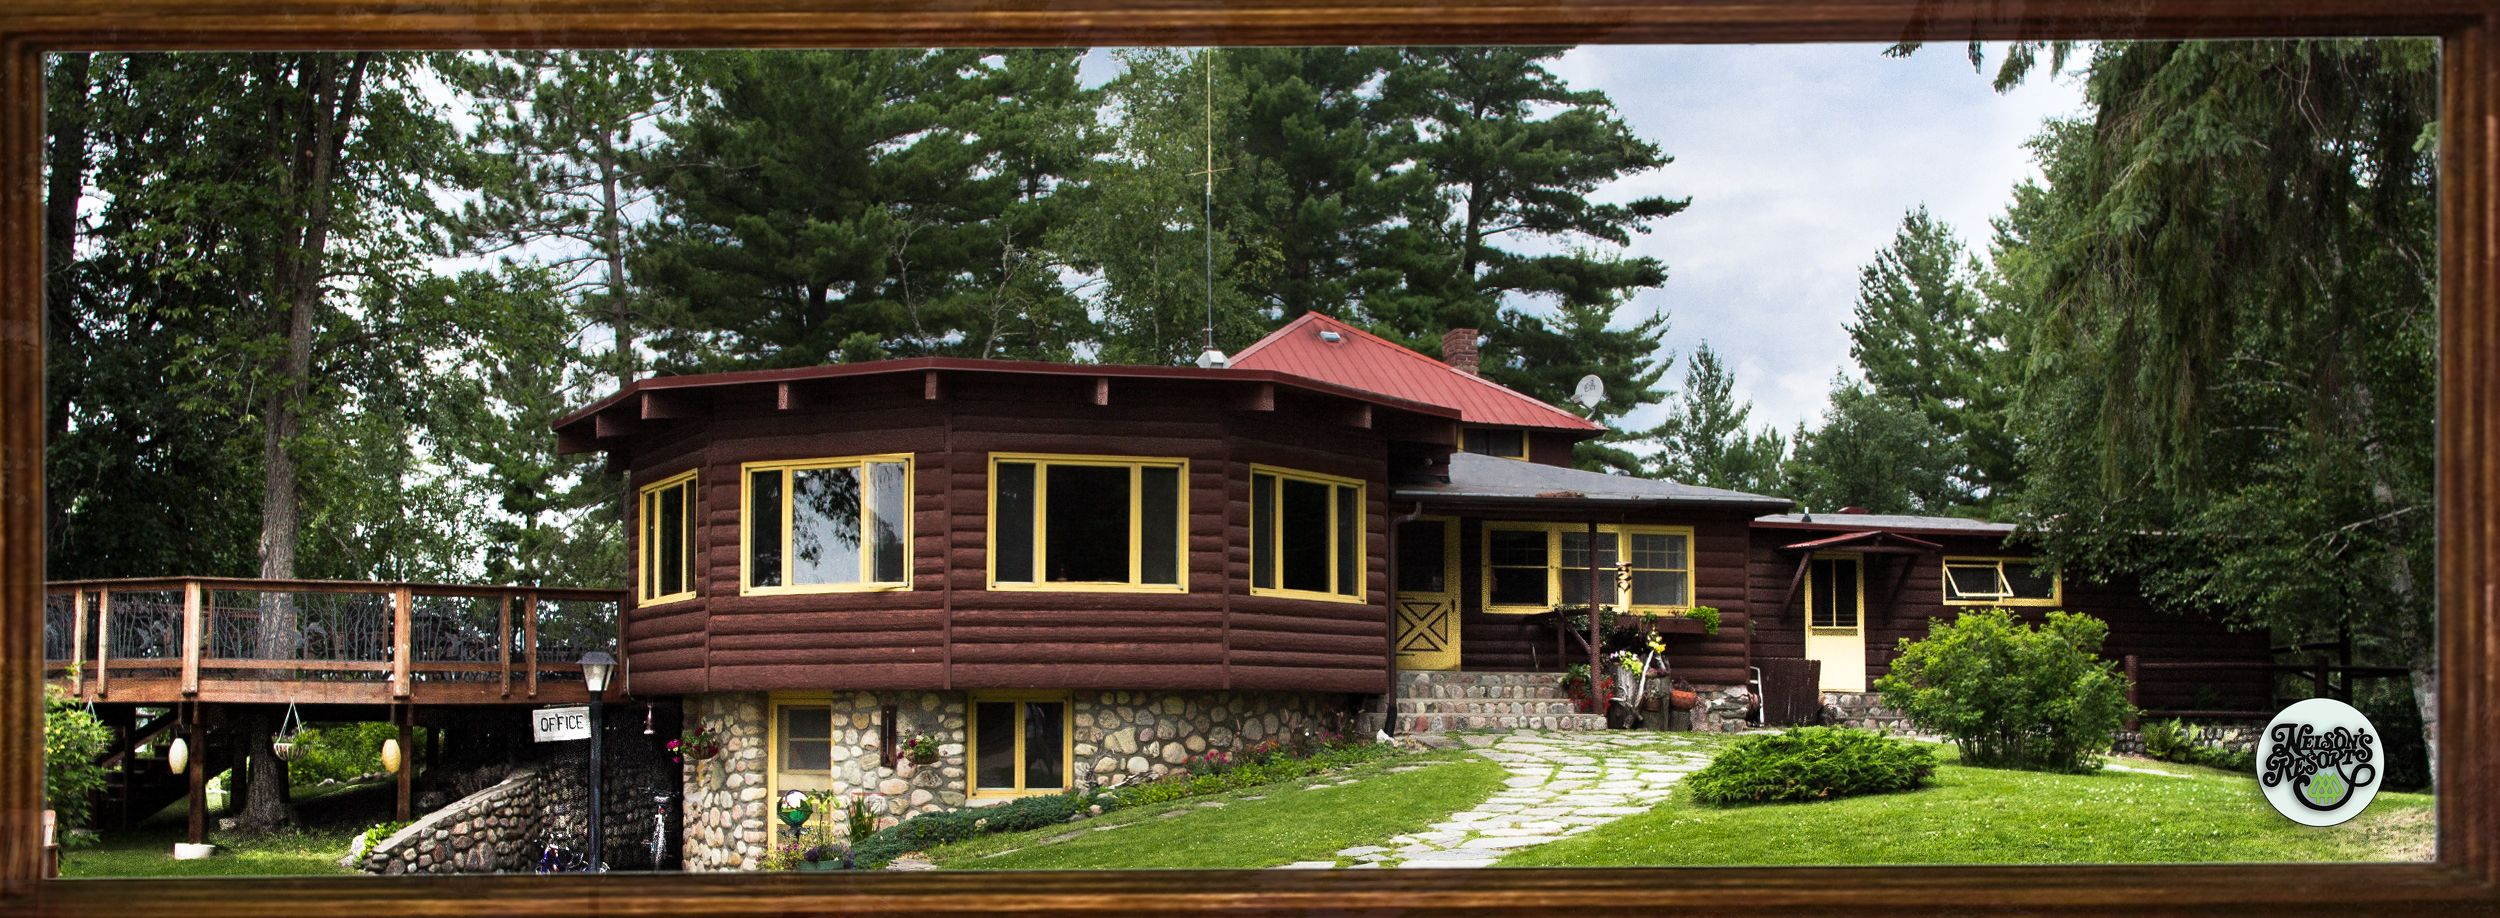 family lake cabins true auto orr false rentals minnesota mn cabin pelican vacation img in